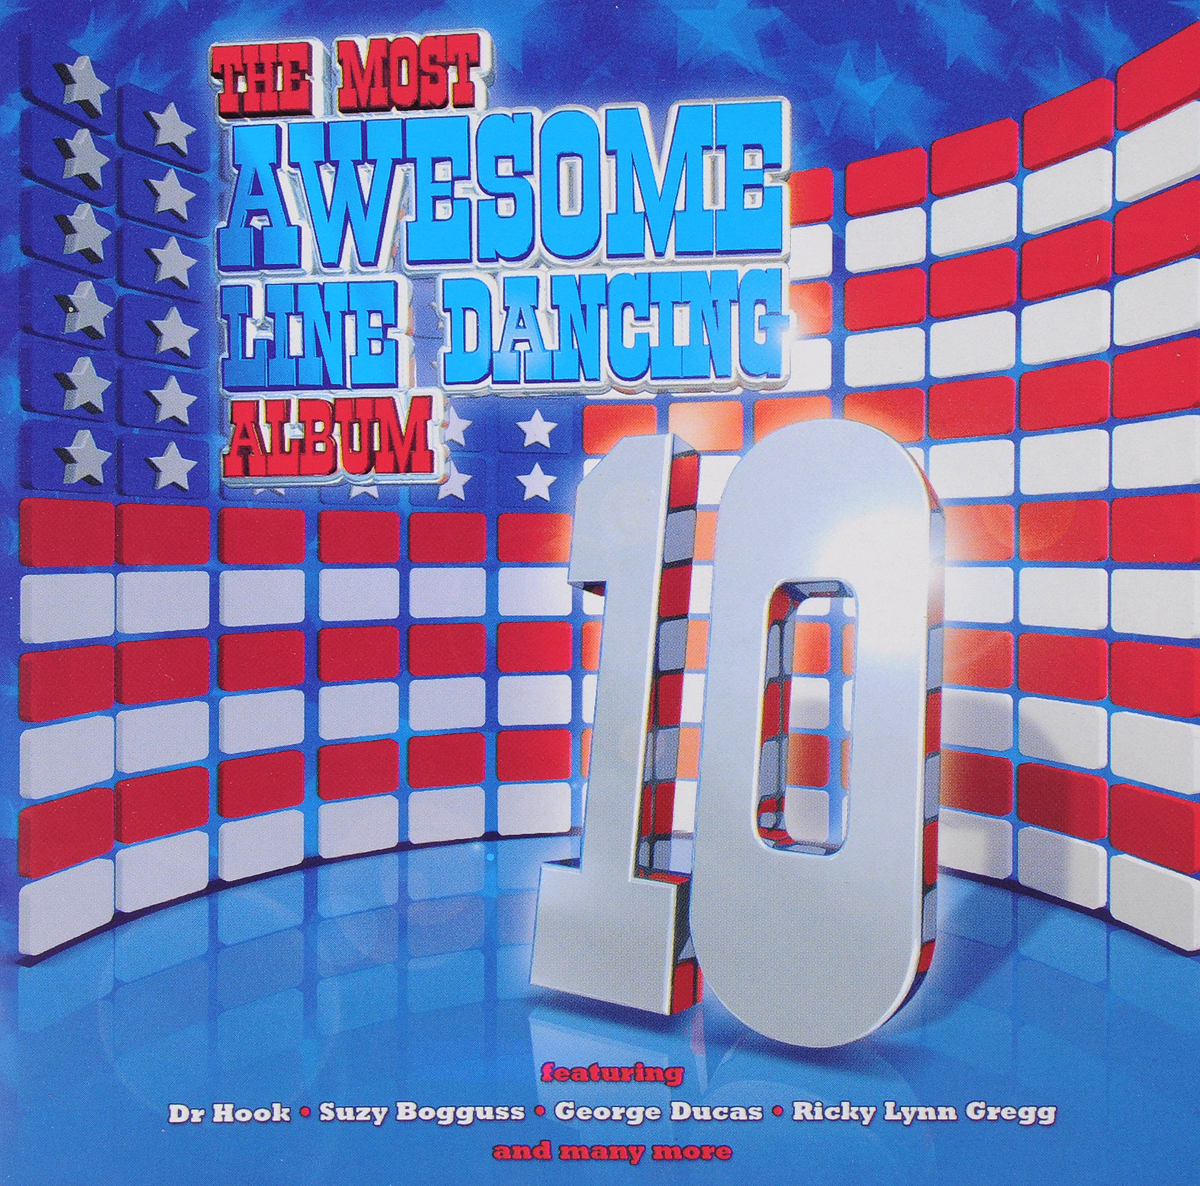 VARIOUS ARTISTS. THE MOST AWESOME LINE DANCE ALBUM 10 виниловая пластинка various artists john morales presents the m